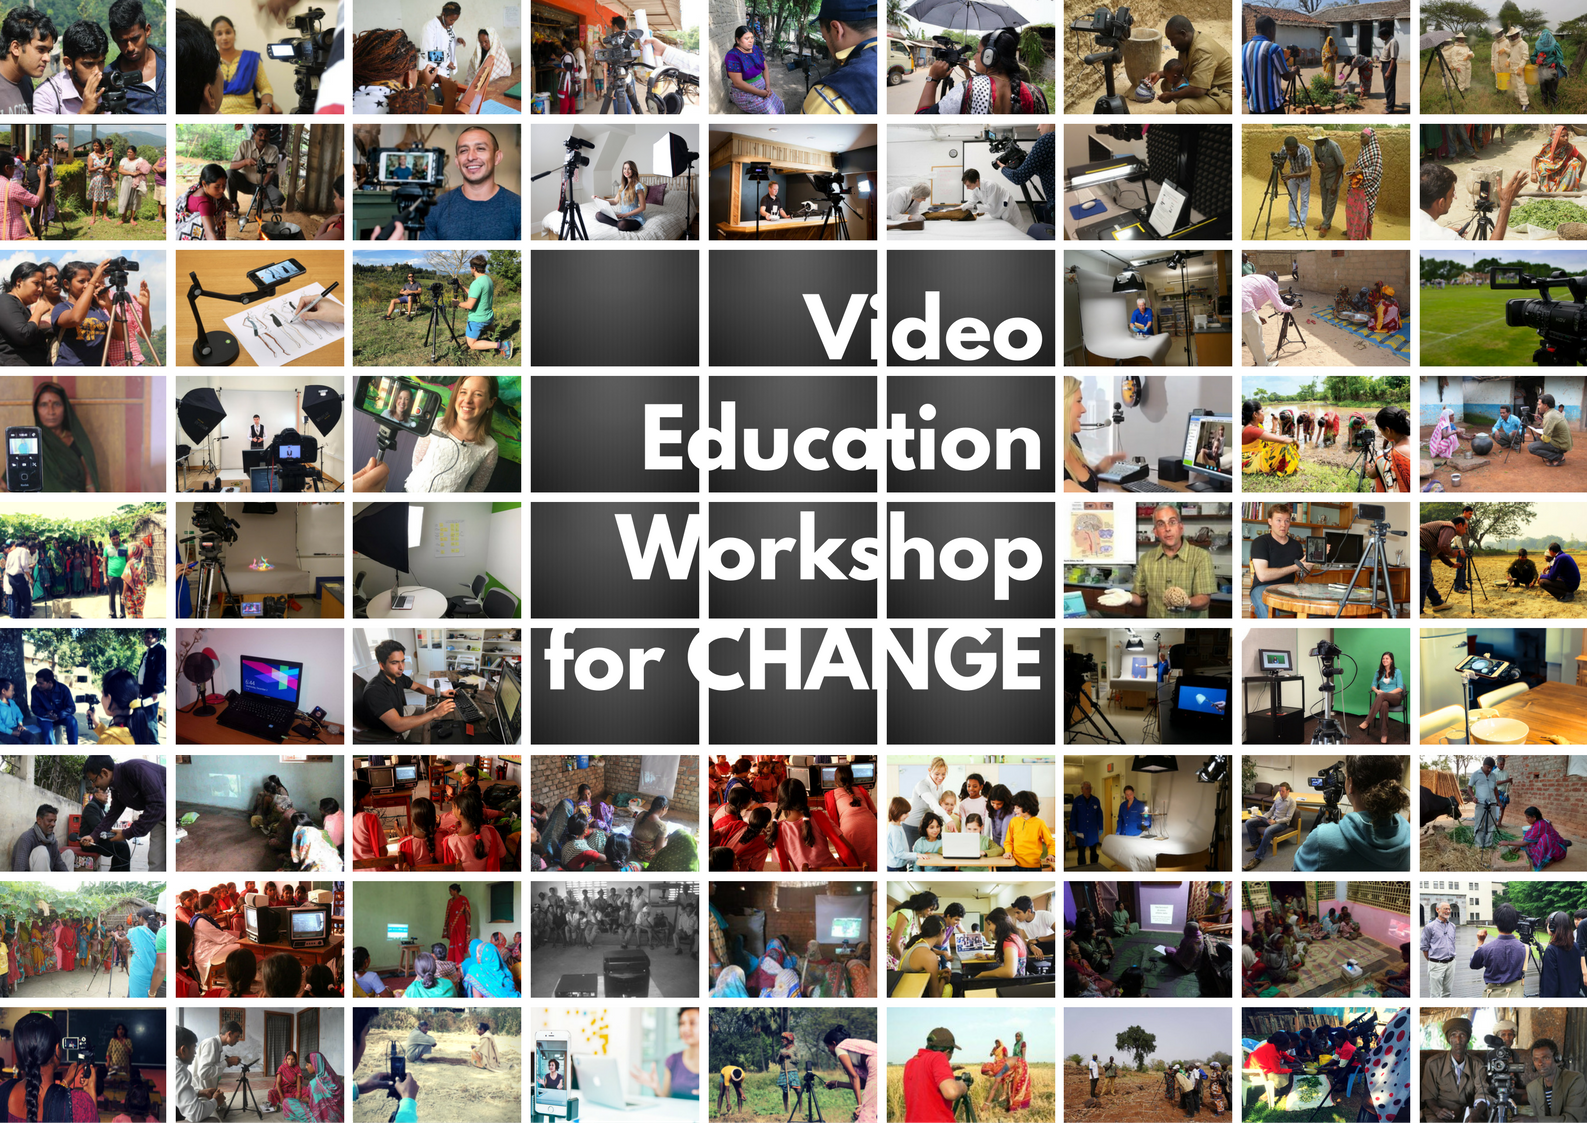 video education for change workshop